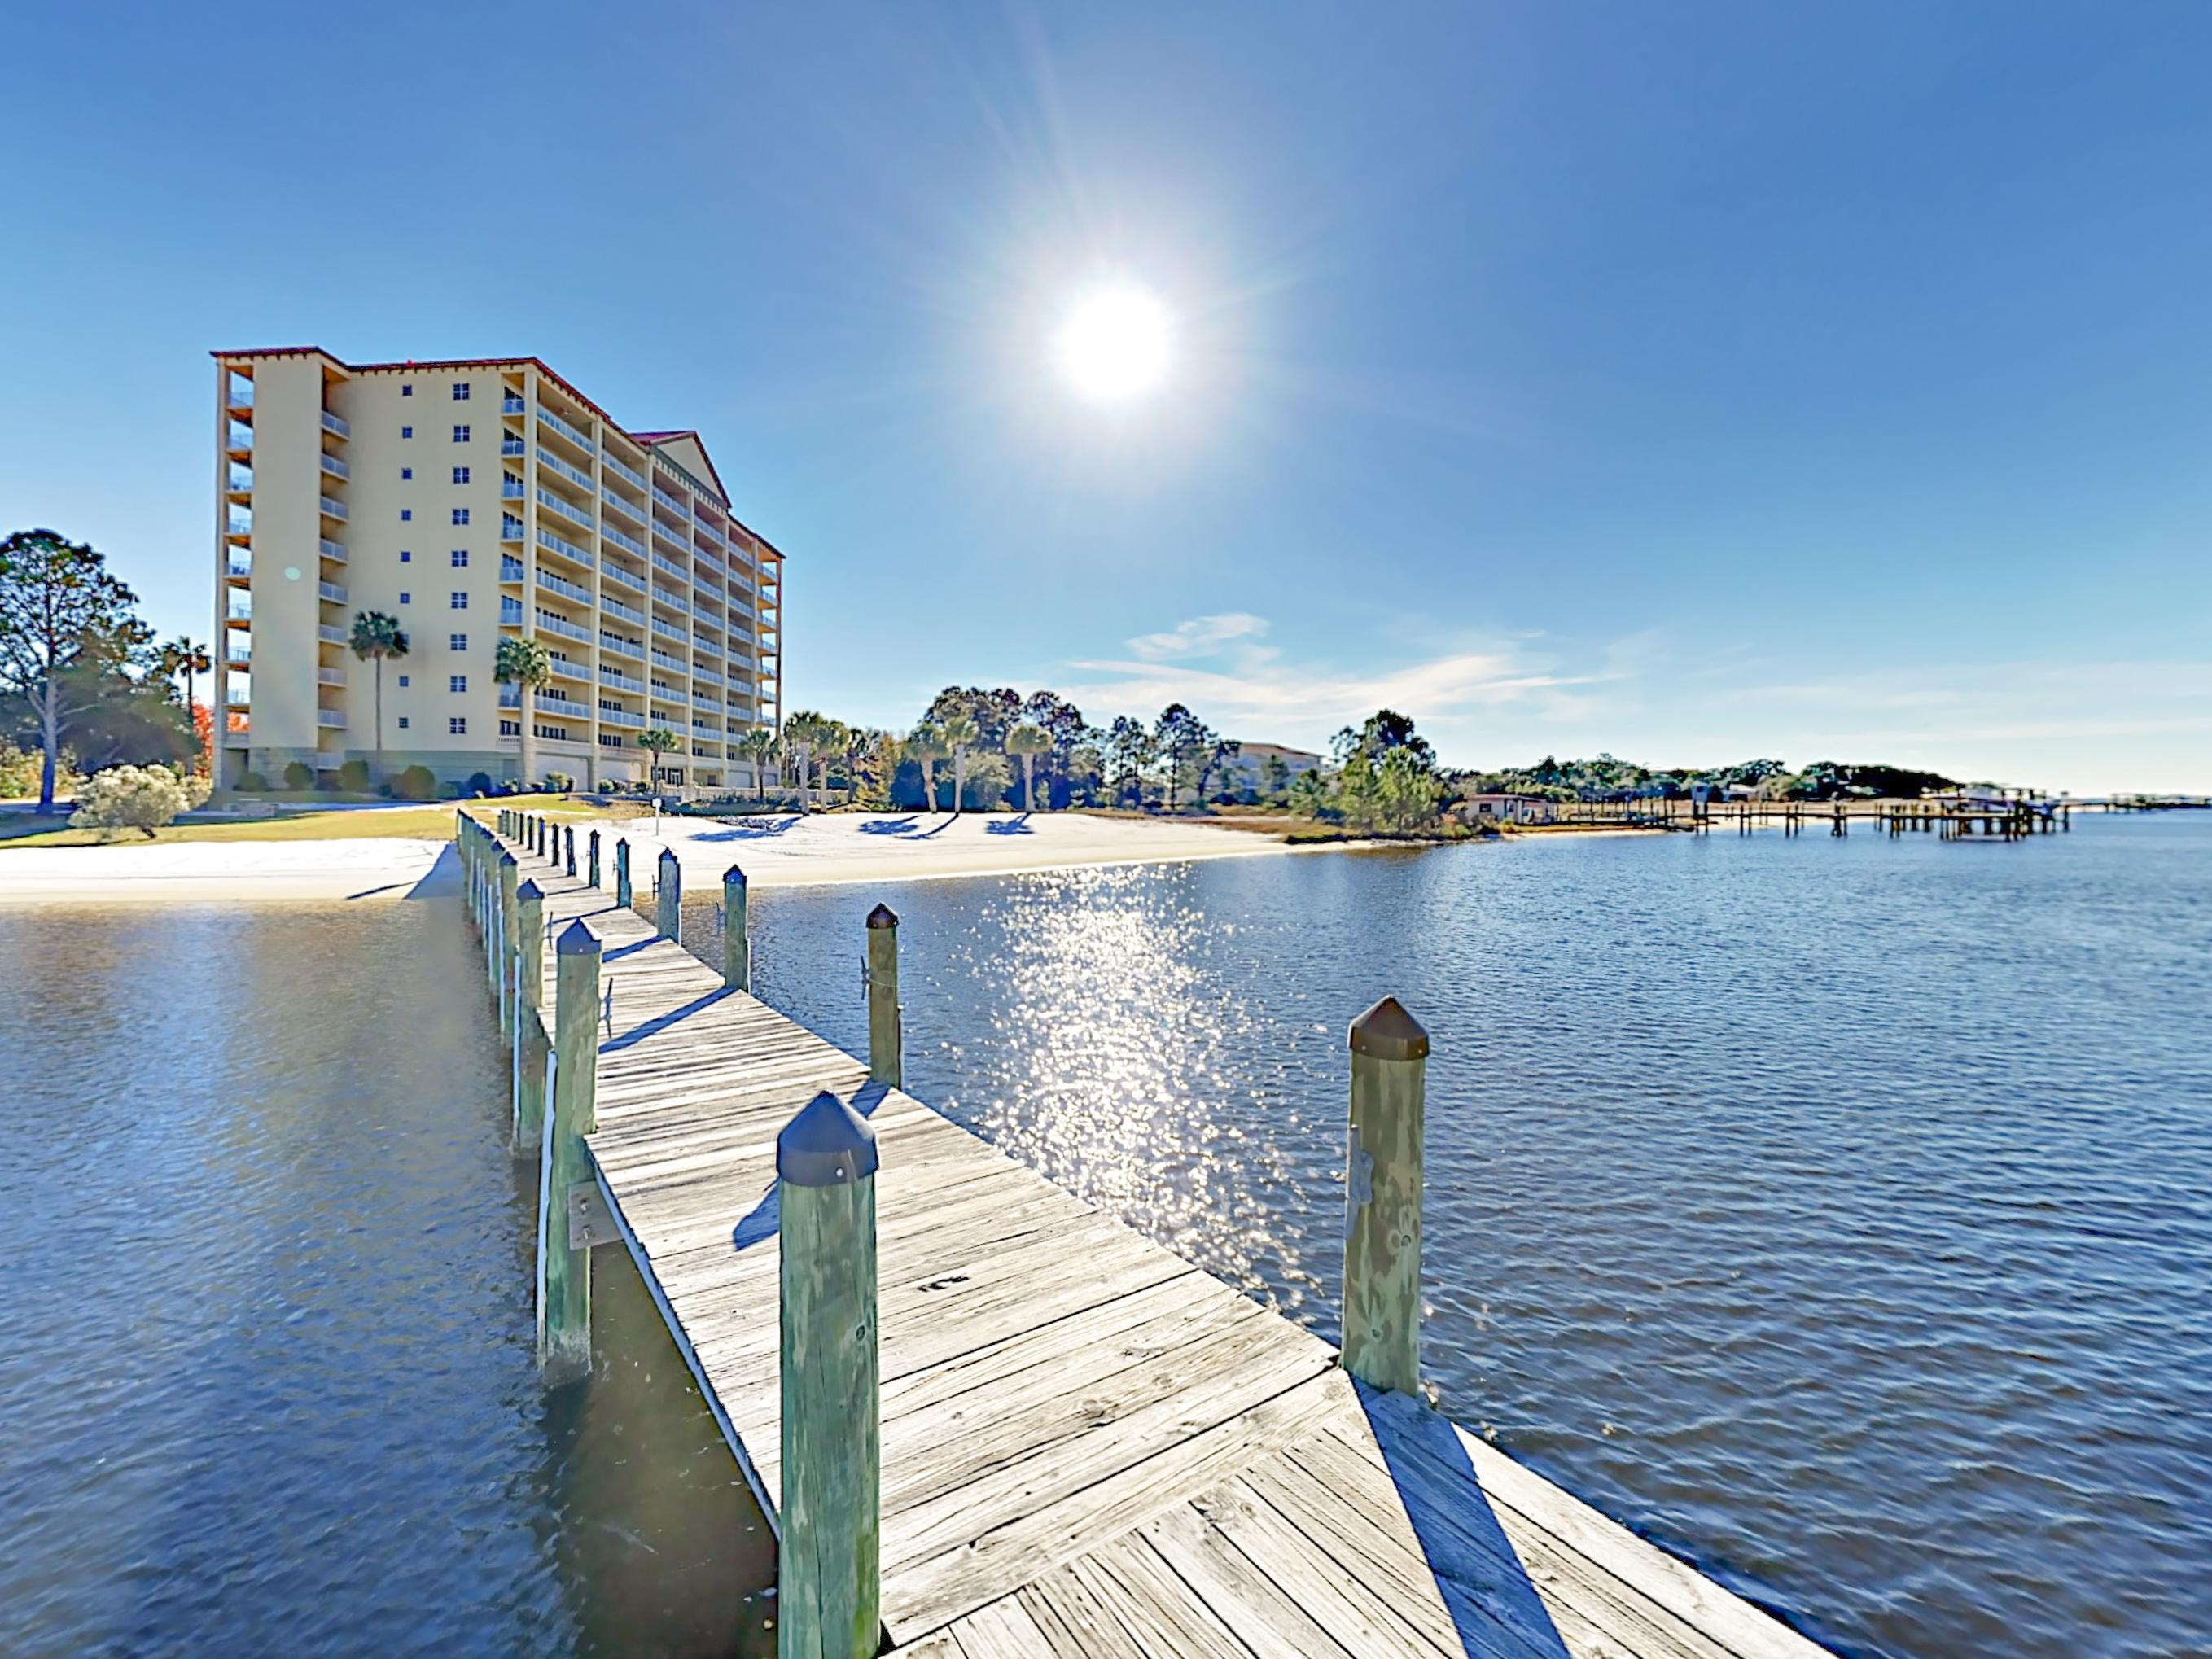 Your rental is located at Sailmaker's Place Condominiums-- less than 2 miles from Perdido Key Beach and Johnson Beach.